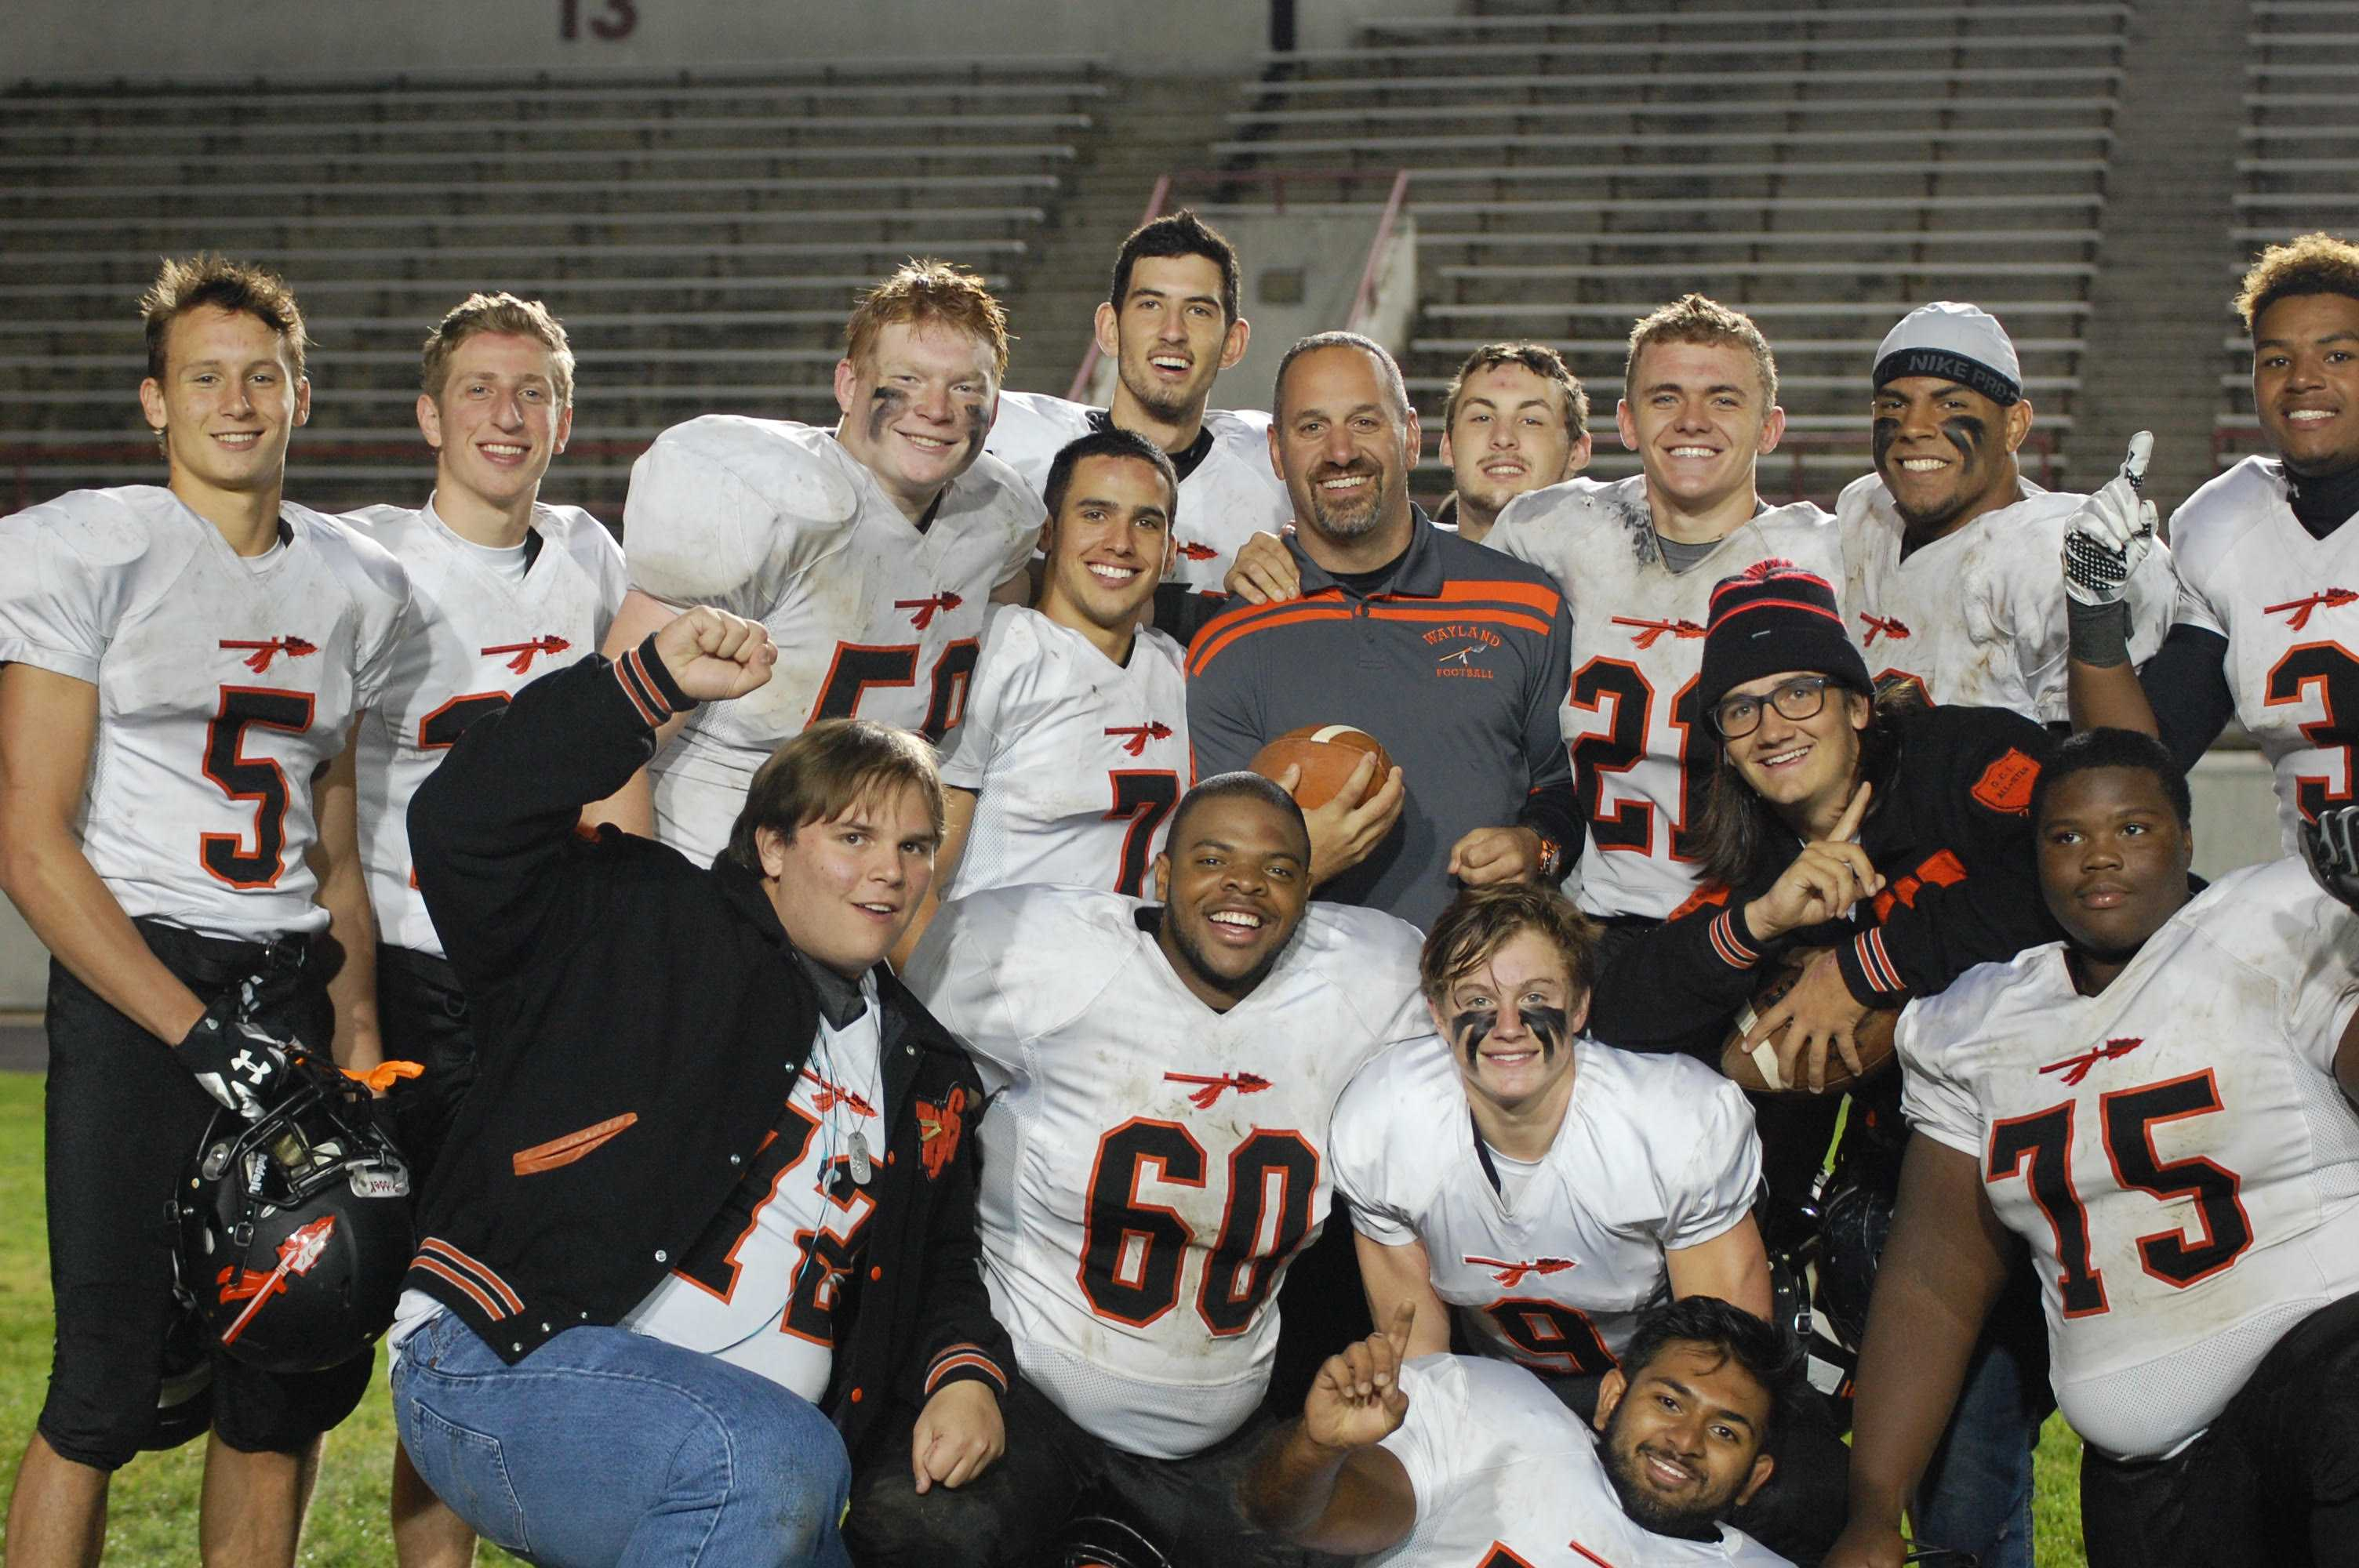 Pictured above is head coach Scott Parseghian with his players. The Warriors' win against Boston Latin on Friday marked Parseghian's 100th win at Wayland.